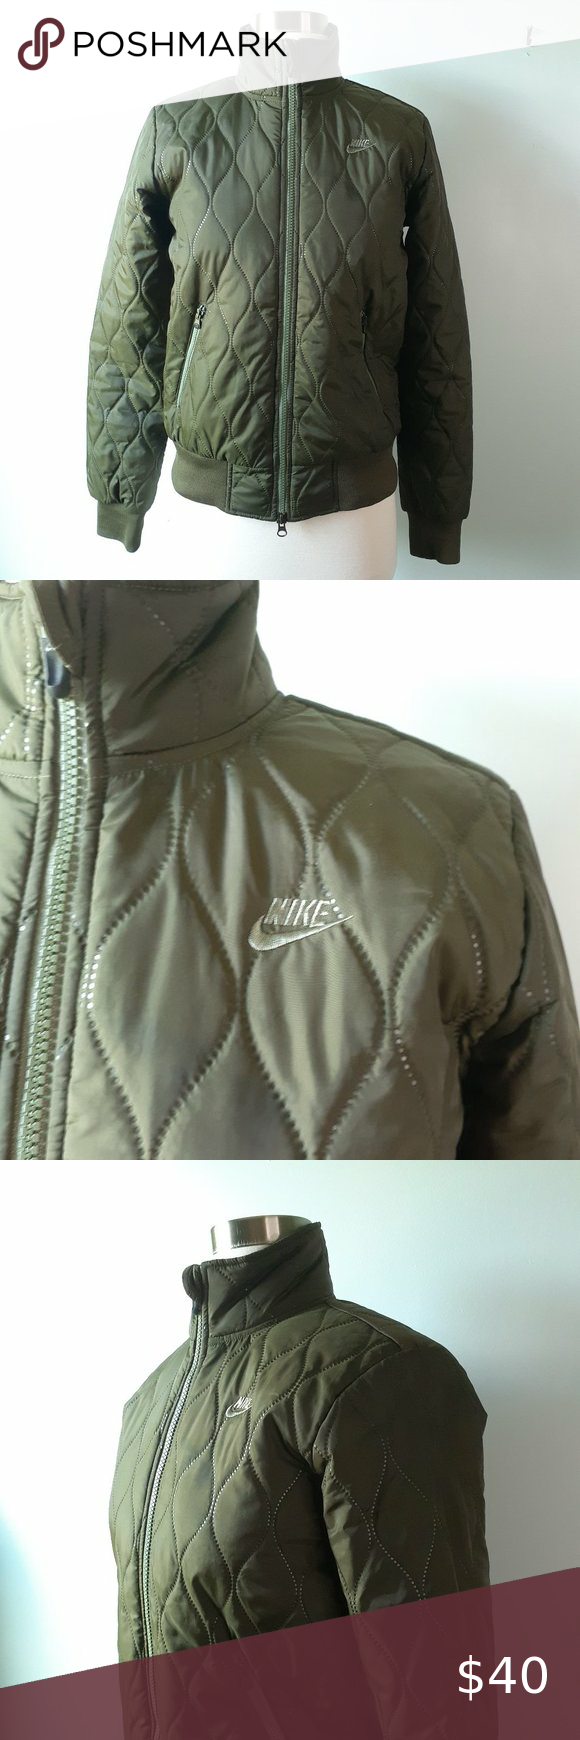 Nike Olive Green Mock Neck Puffer Jacket Xs Very Good Used Condition Puffer Jacket From Nike Size Extra Small Xs Olive Green Puffer Jackets Jackets Mock Neck [ 1740 x 580 Pixel ]